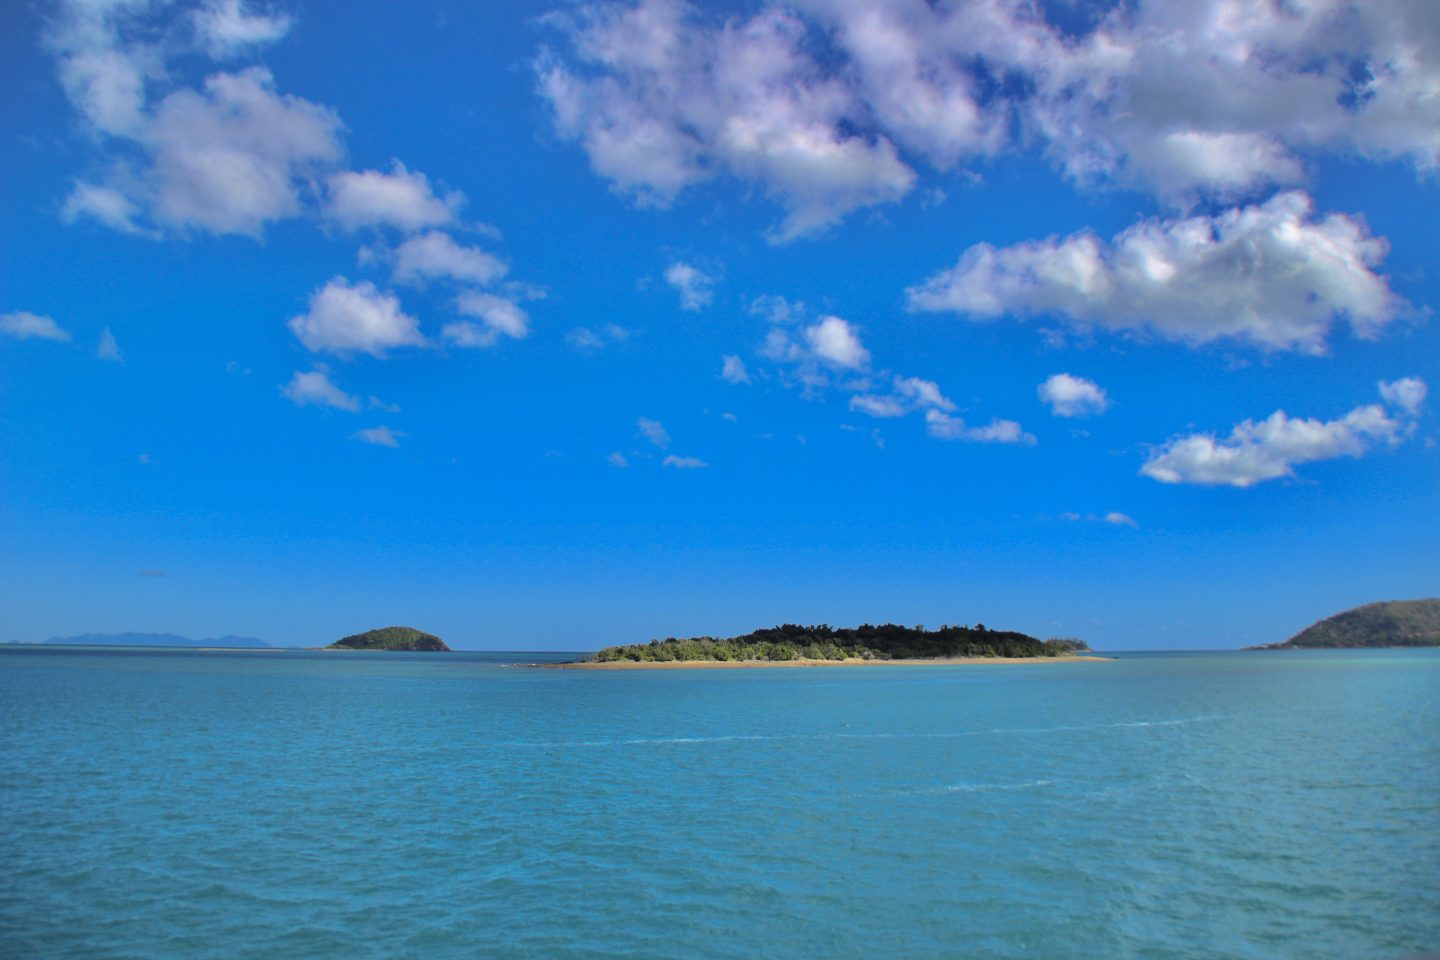 Cruise Whitsundays to the Great Barrier Reef